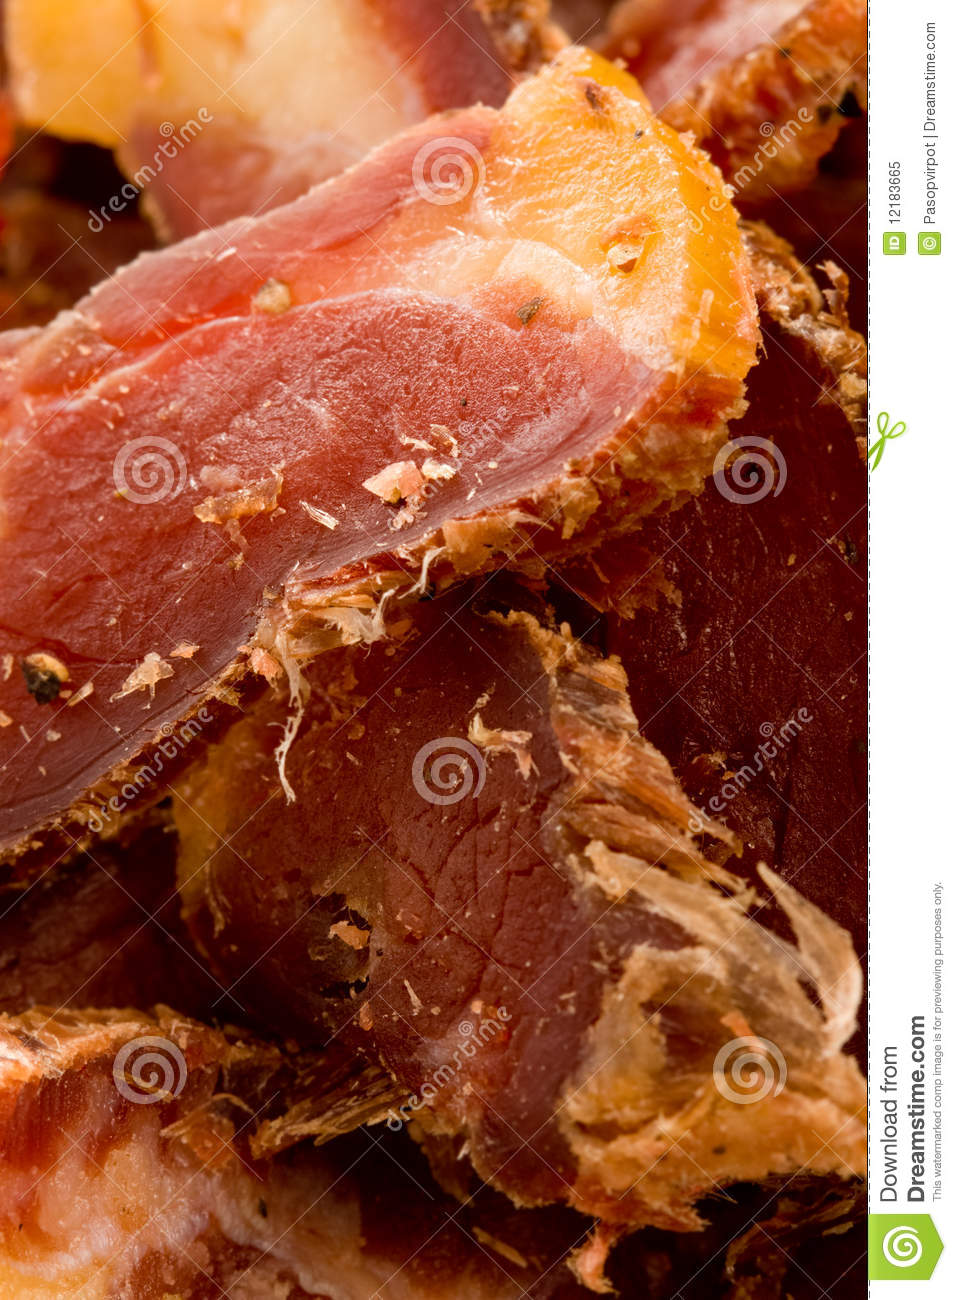 Biltong South African Dried Meat Snack Royalty Free Stock Photo